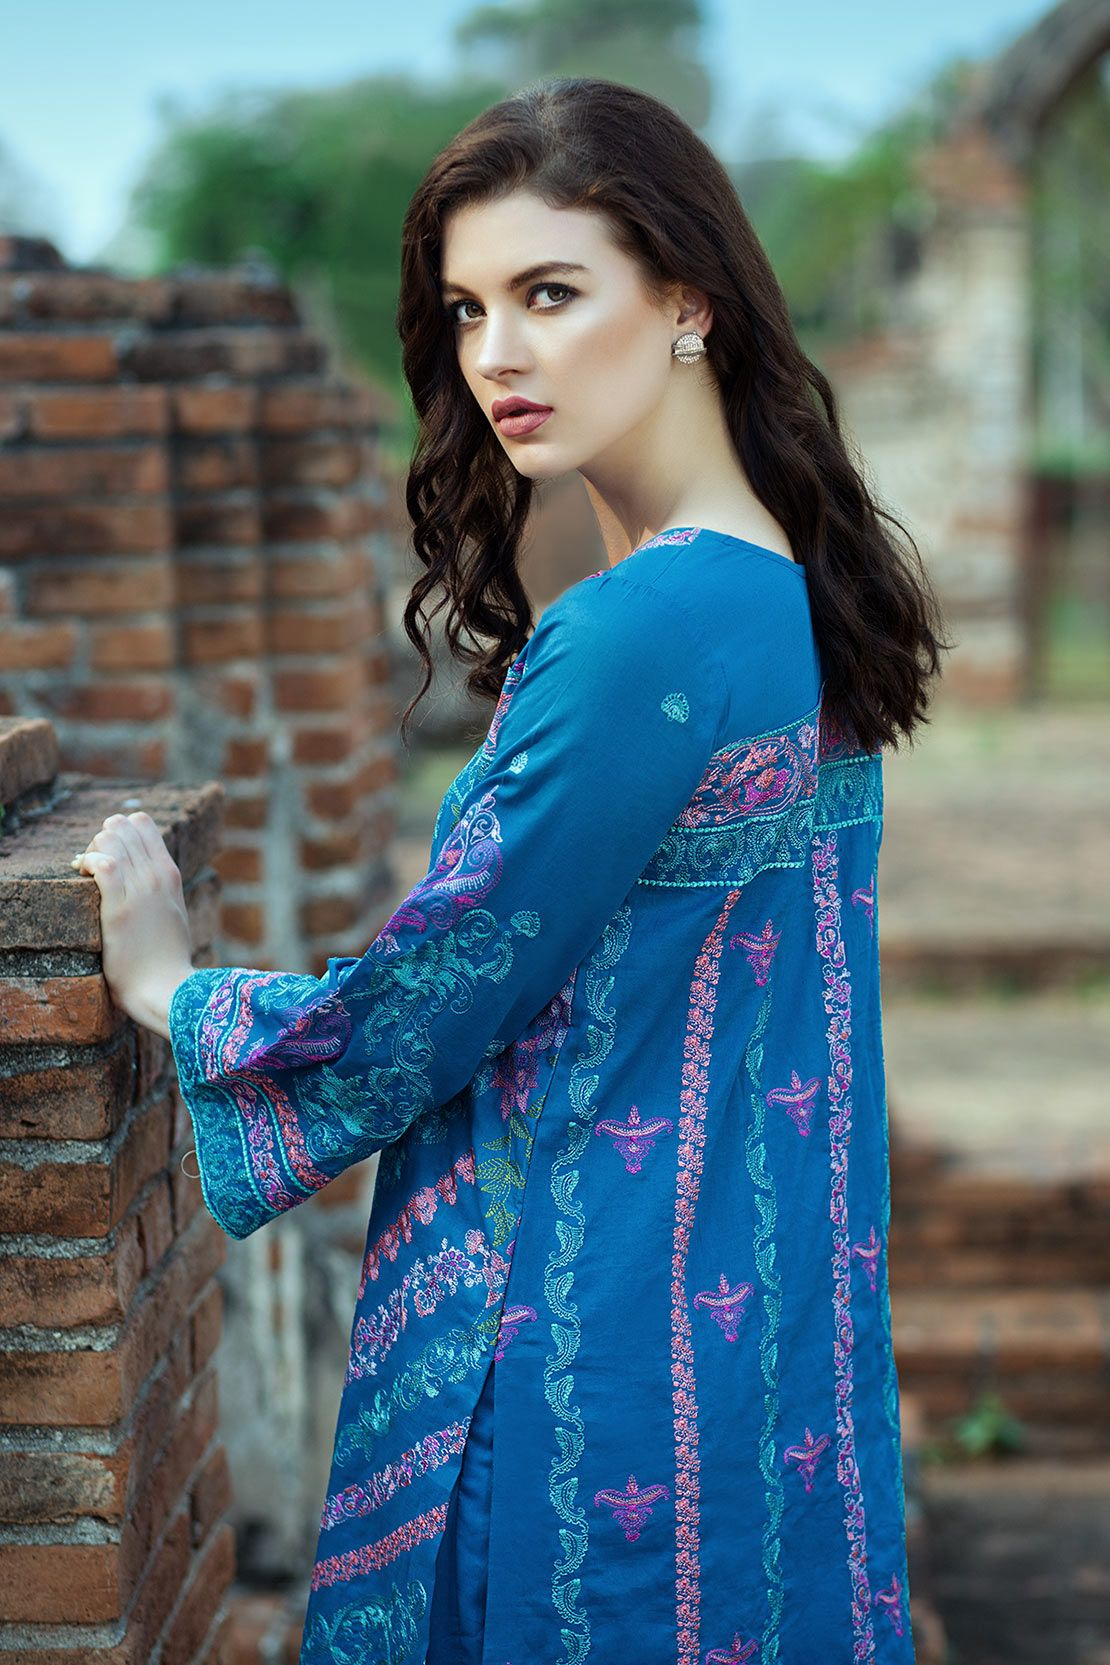 b90b823b9c This spring get dressed in beautiful and elegant dresses by Taana Baana  spring embroidered 2019 collection#springcollection #spring #readytowear  #pretwear ...